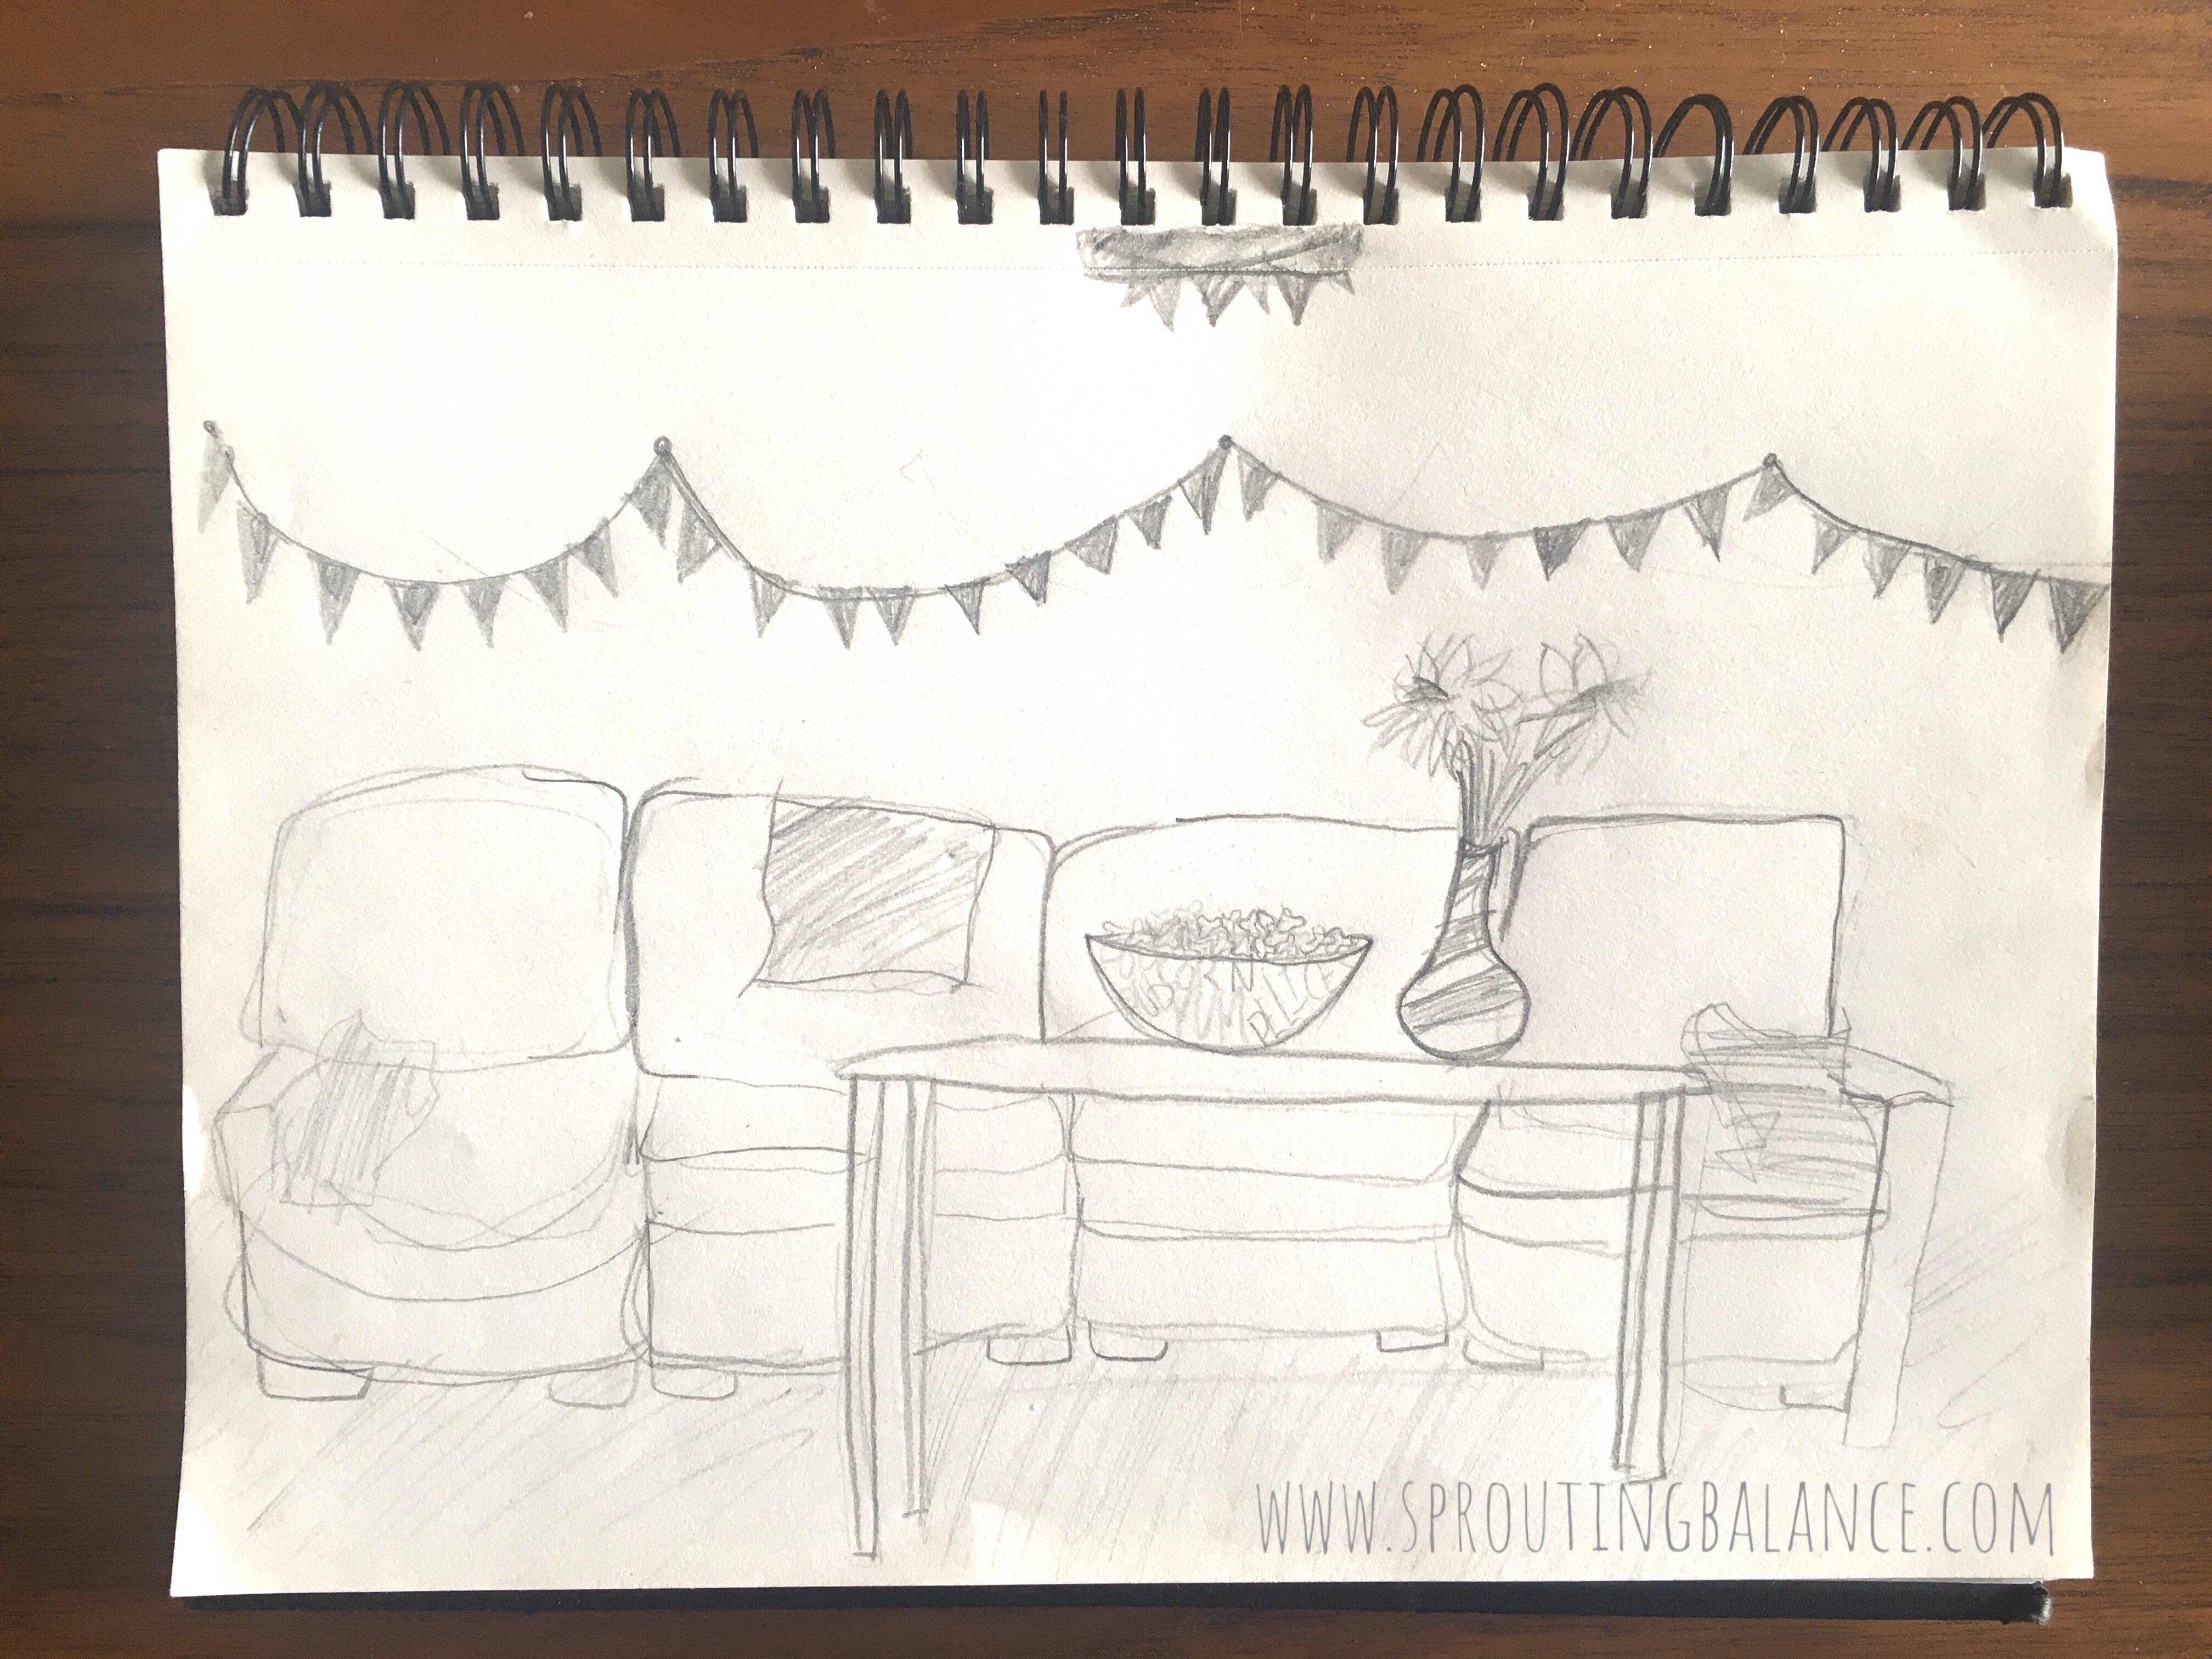 Staying Occupied: Living Room Theatre - Drawing | www.sproutingbalance.com | #stayhome #socialdistancing #bepositive